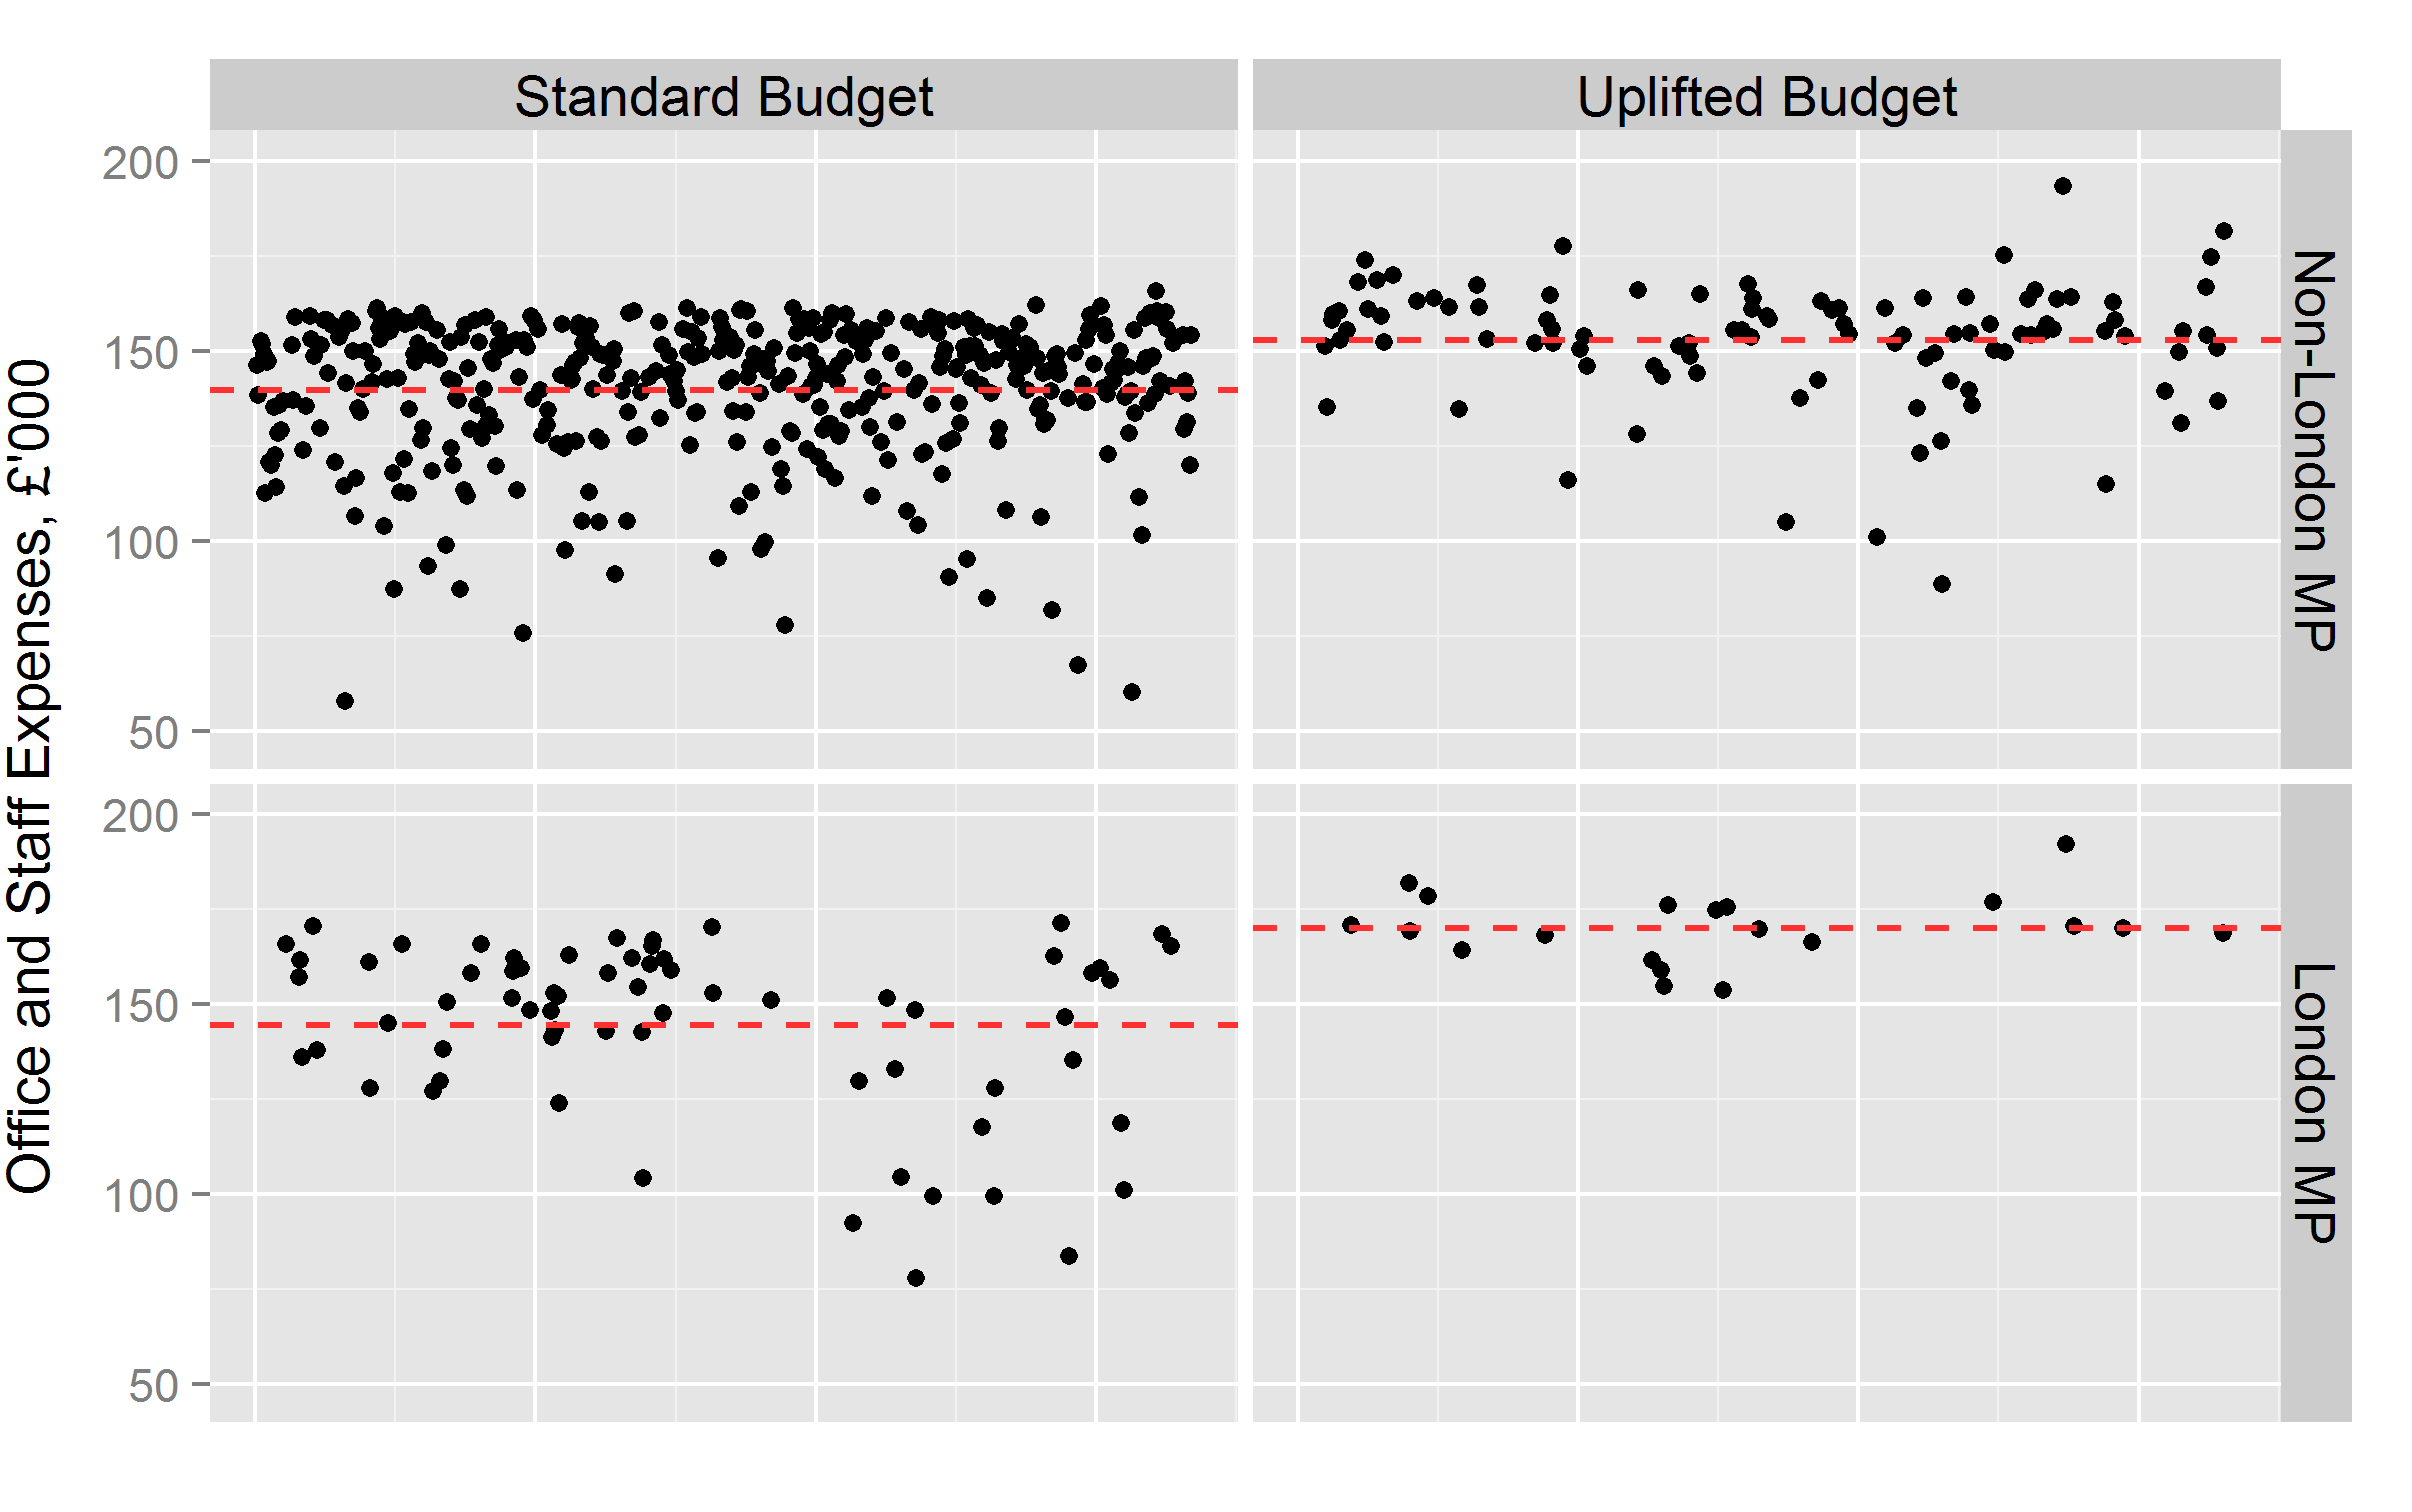 Graph 1: Total office and staff expenses (in £'000). Each dot represents an individual MP. Dotted lines represent averages for the sub-group.